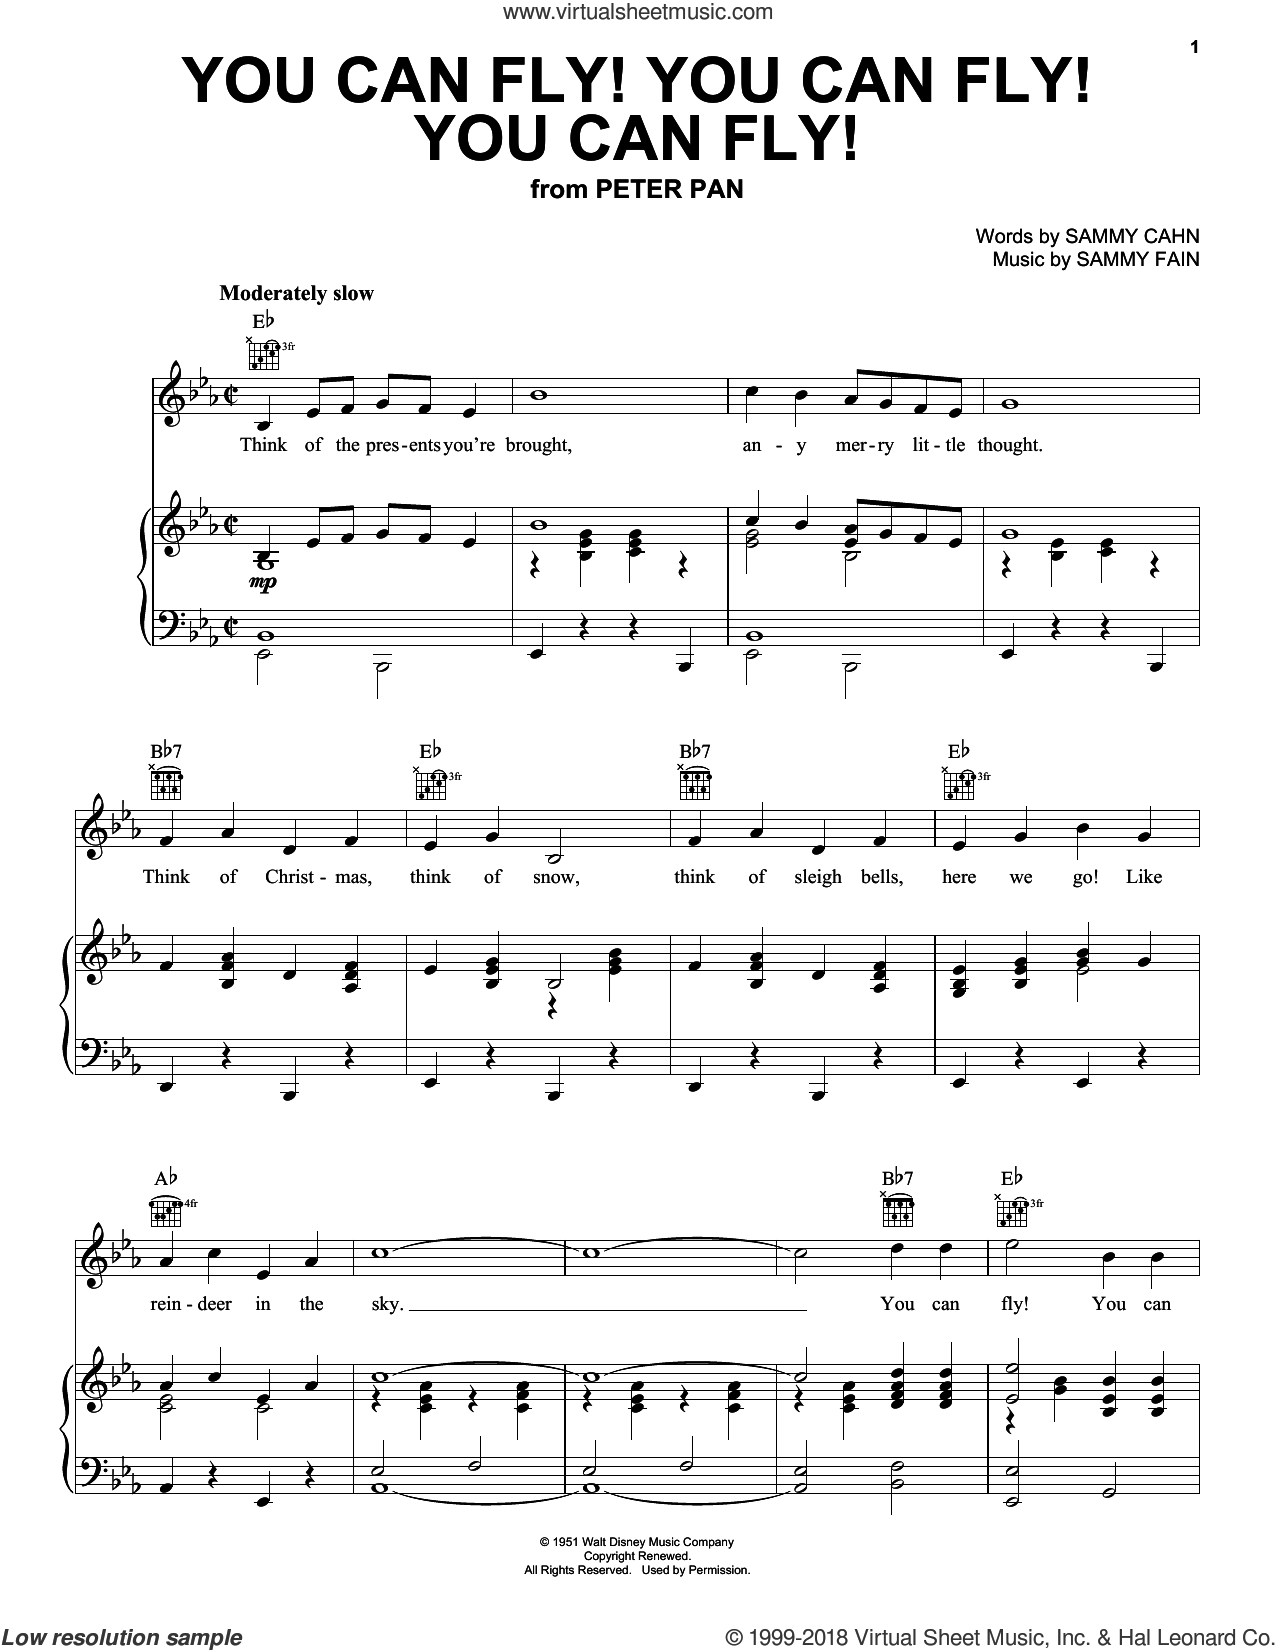 You Can Fly! You Can Fly! You Can Fly! sheet music for voice, piano or guitar by Sammy Fain